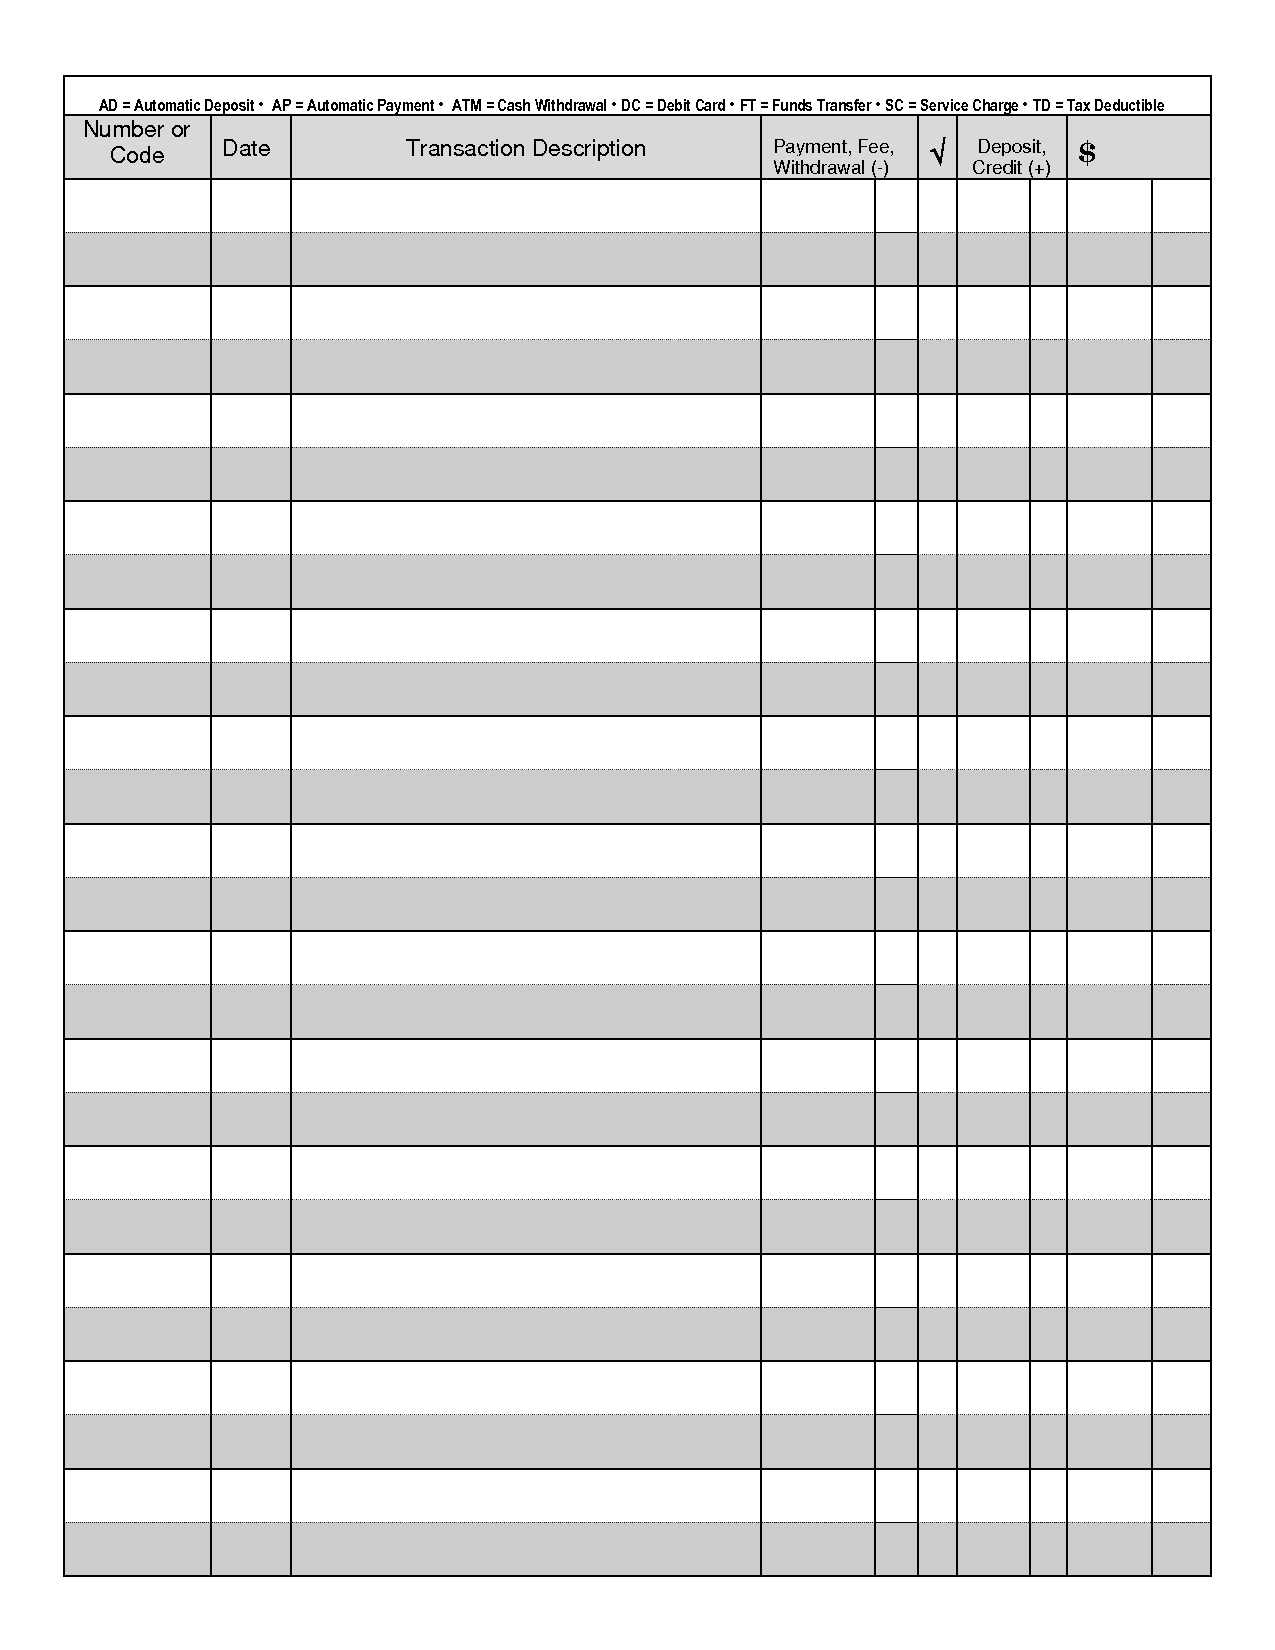 37 Checkbook Register Templates [100% Free, Printable] ᐅ Template Lab